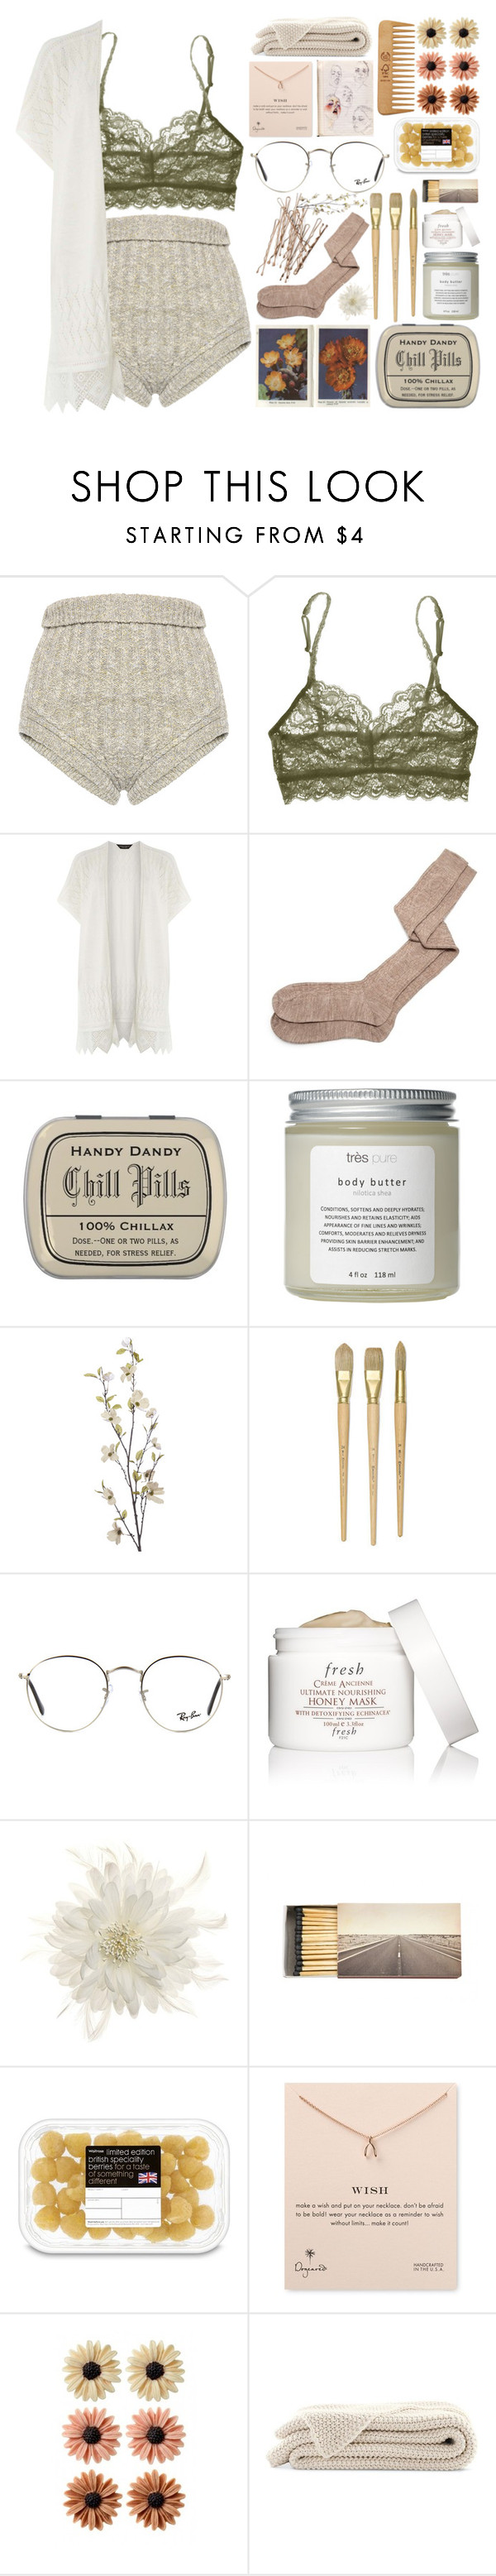 """i think i saw you in my sleep darling"" by iradicate ❤ liked on Polyvore featuring Philosophy di Lorenzo Serafini, Cosabella, Dorothy Perkins, Aymara, Très Pure, Pier 1 Imports, Ray-Ban, Fresh, Tasha and Jayson Home"